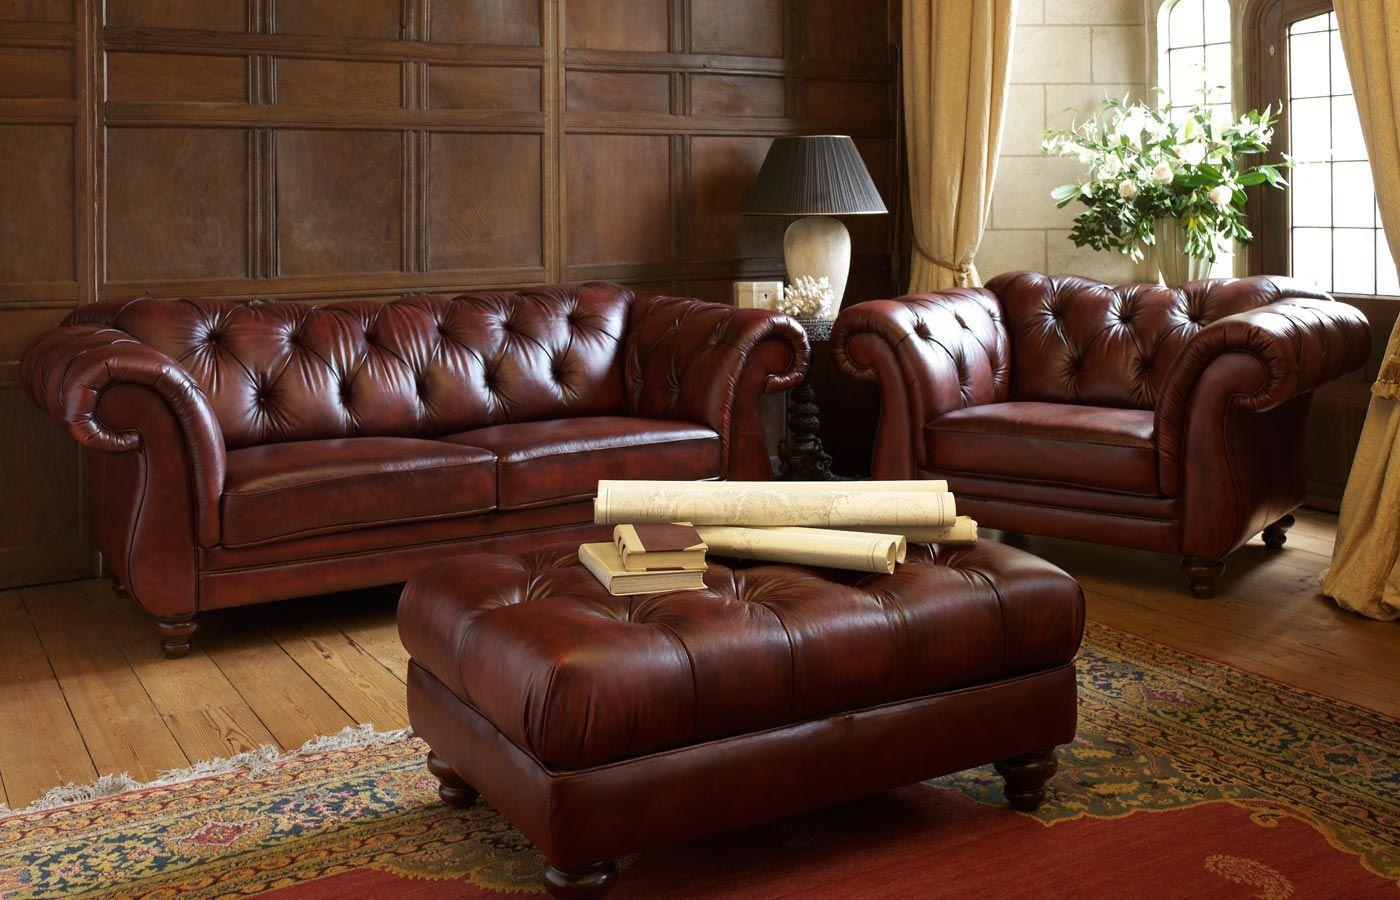 Chesterfield Sofa / Leather / 2 Seater / Brown – Heathcote In Red Leather Chesterfield Chairs (View 15 of 20)